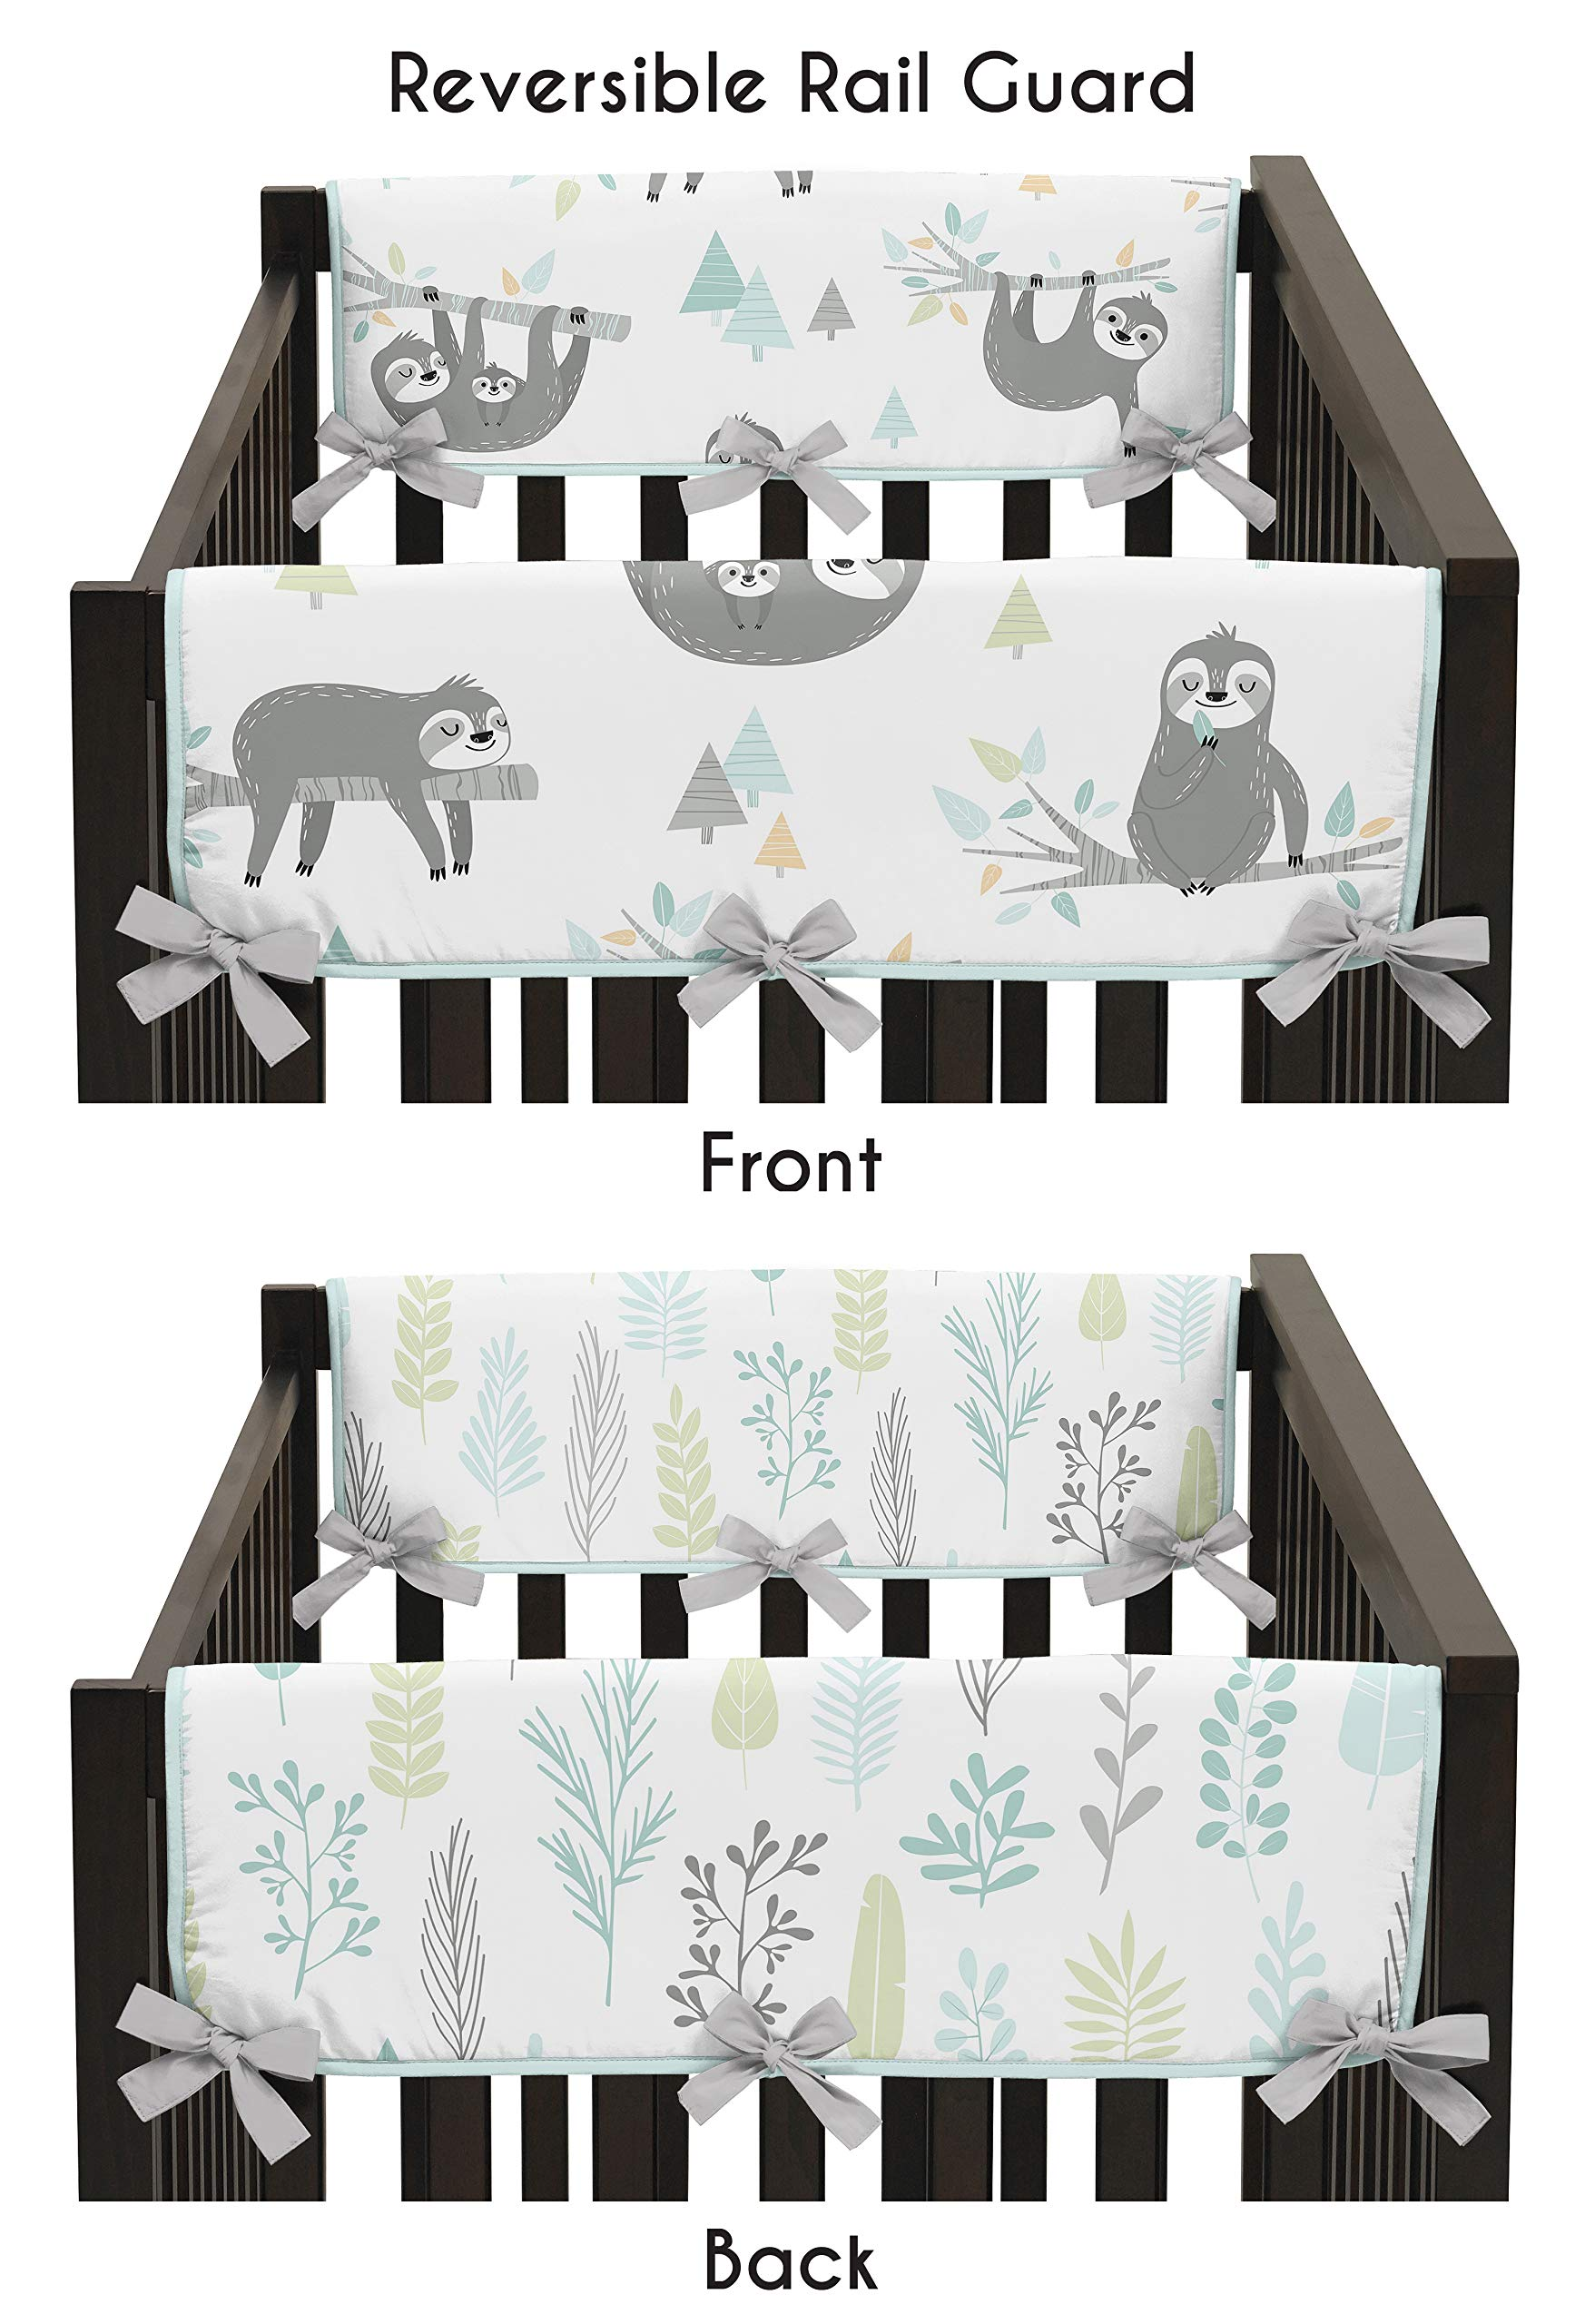 Sweet Jojo Designs Blue and Grey Jungle Sloth Leaf Unisex Boy or Girl Side Crib Rail Guards Baby Teething Cover Protector Wrap - Set of 2 - Turquoise, Gray and Green Botanical Rainforest